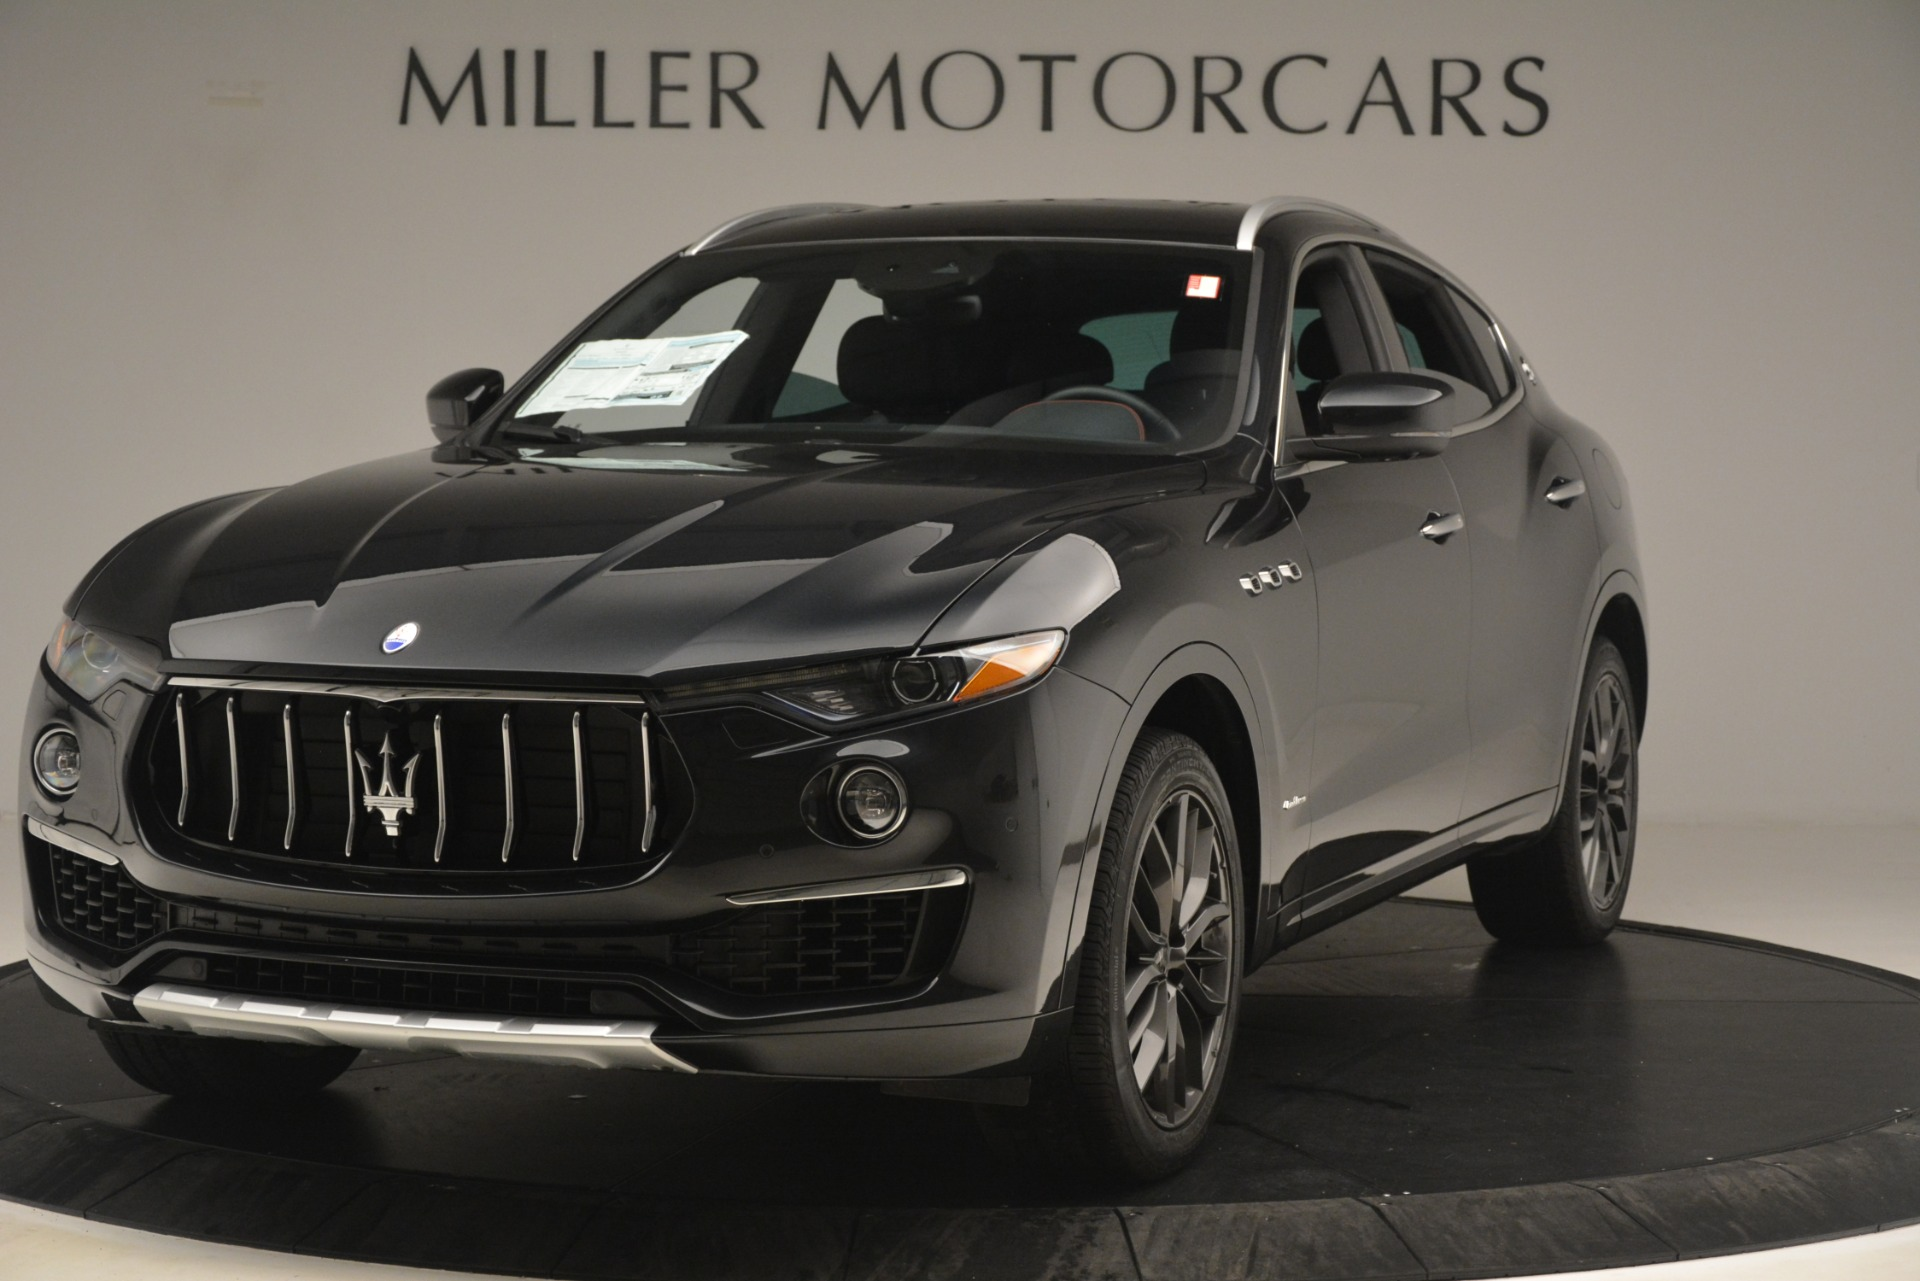 New 2019 Maserati Levante Q4 GranLusso for sale Sold at Rolls-Royce Motor Cars Greenwich in Greenwich CT 06830 1